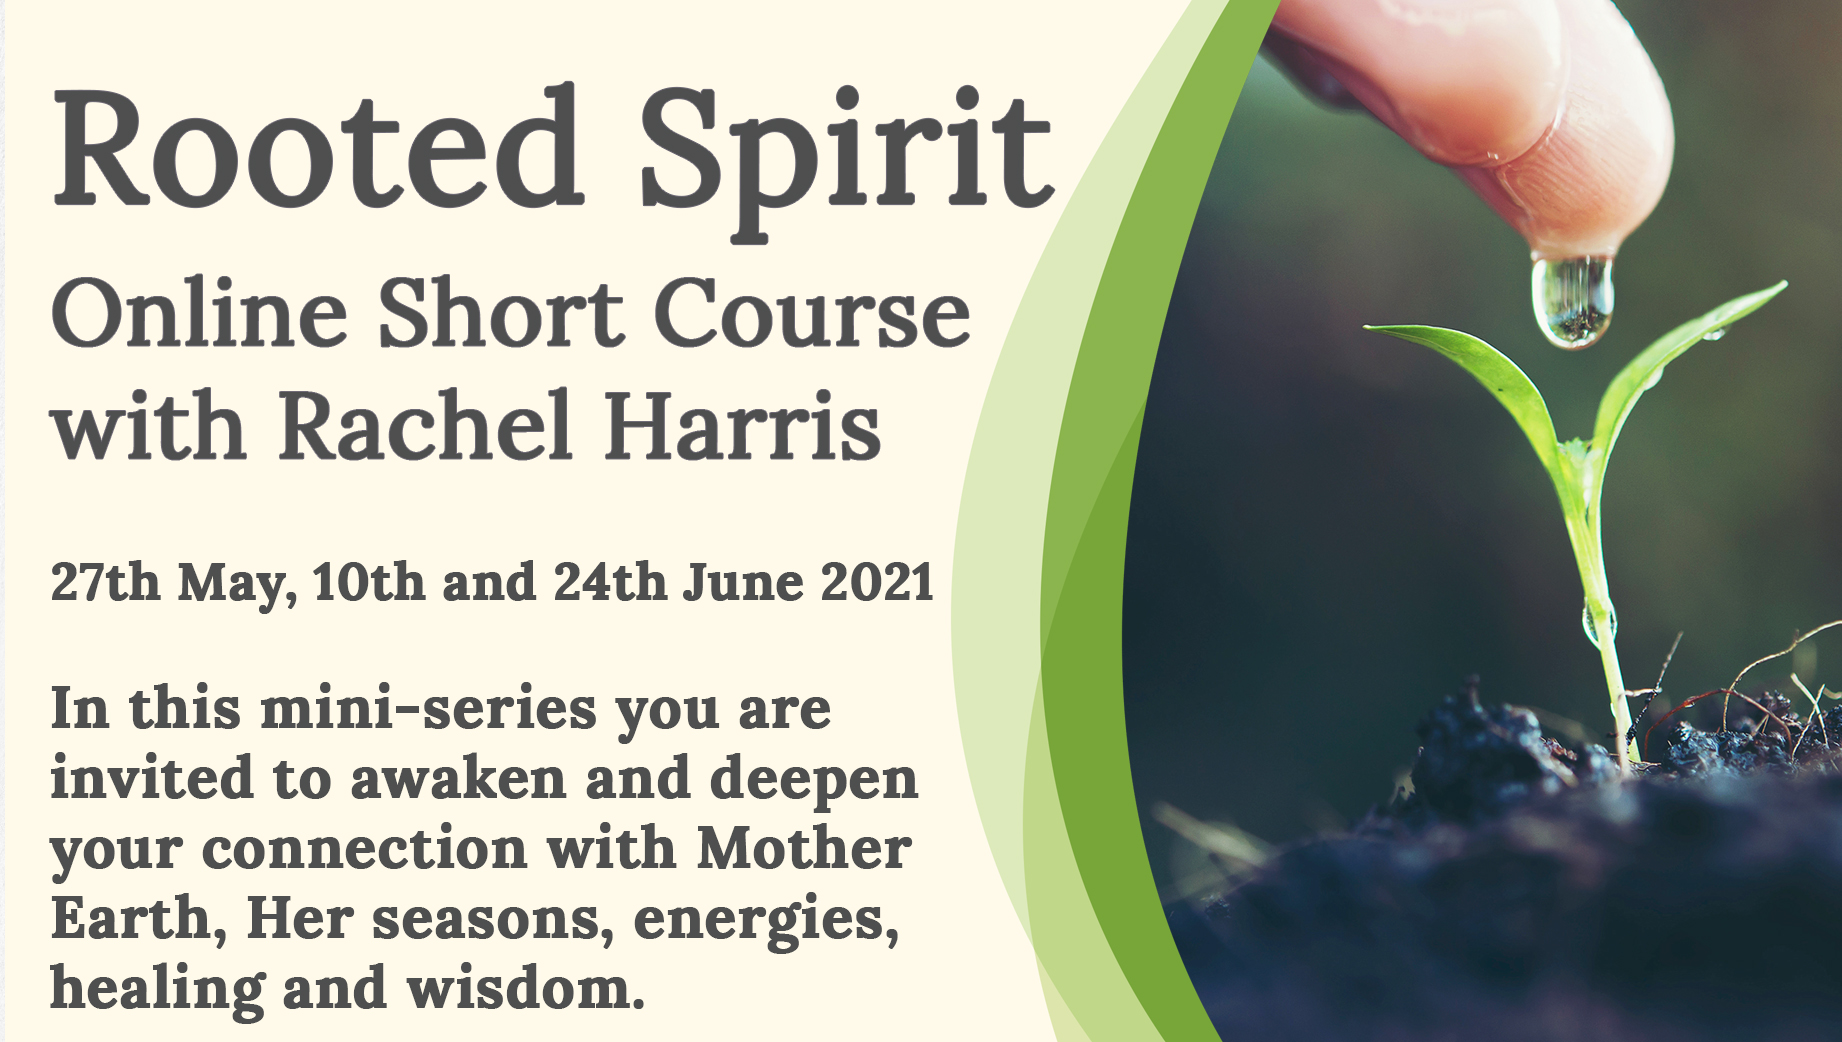 Rooted Spirit